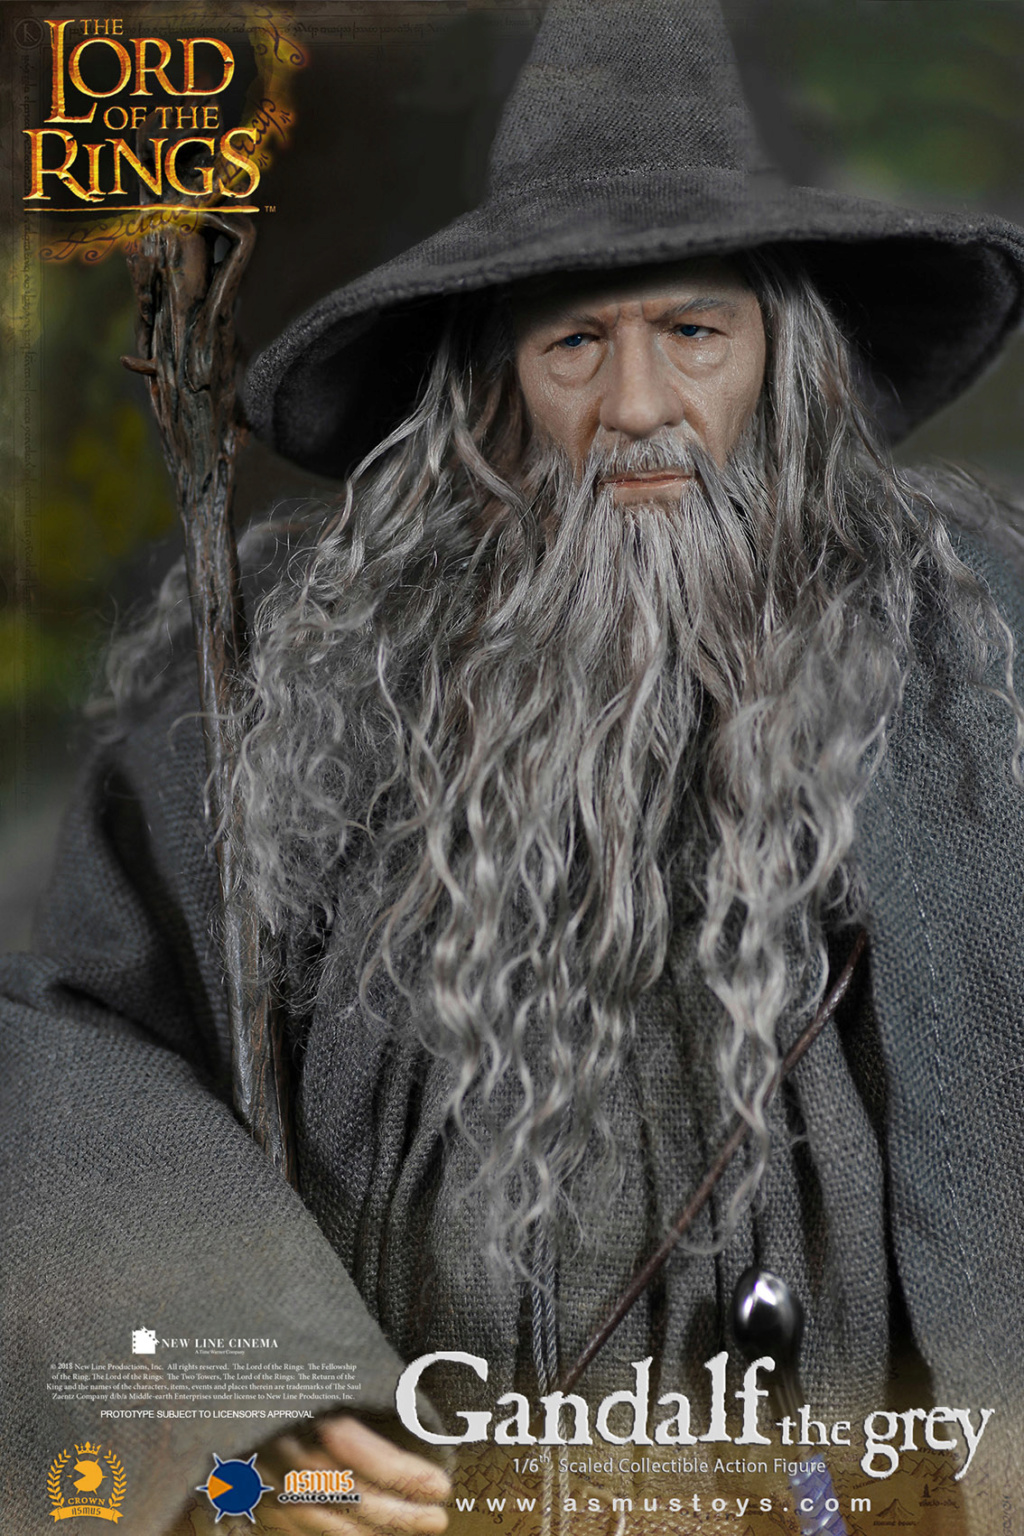 lordoftherings - NEW PRODUCT: ASMUS TOYS THE CROWN SERIES : GANDALF THE GREY 1/6 figure 8201